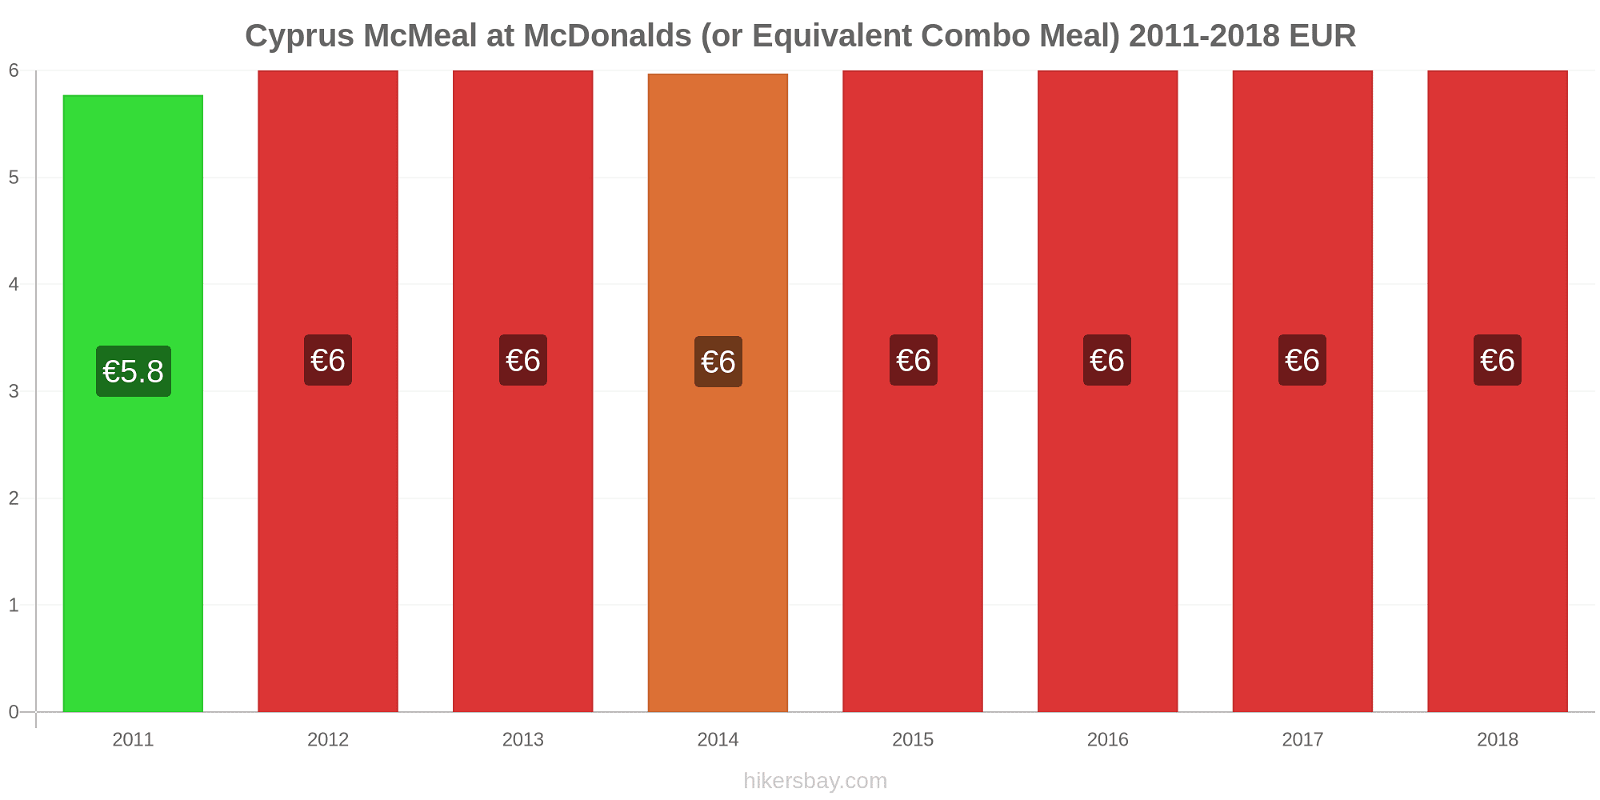 Cyprus price changes McMeal at McDonalds (or Equivalent Combo Meal) hikersbay.com